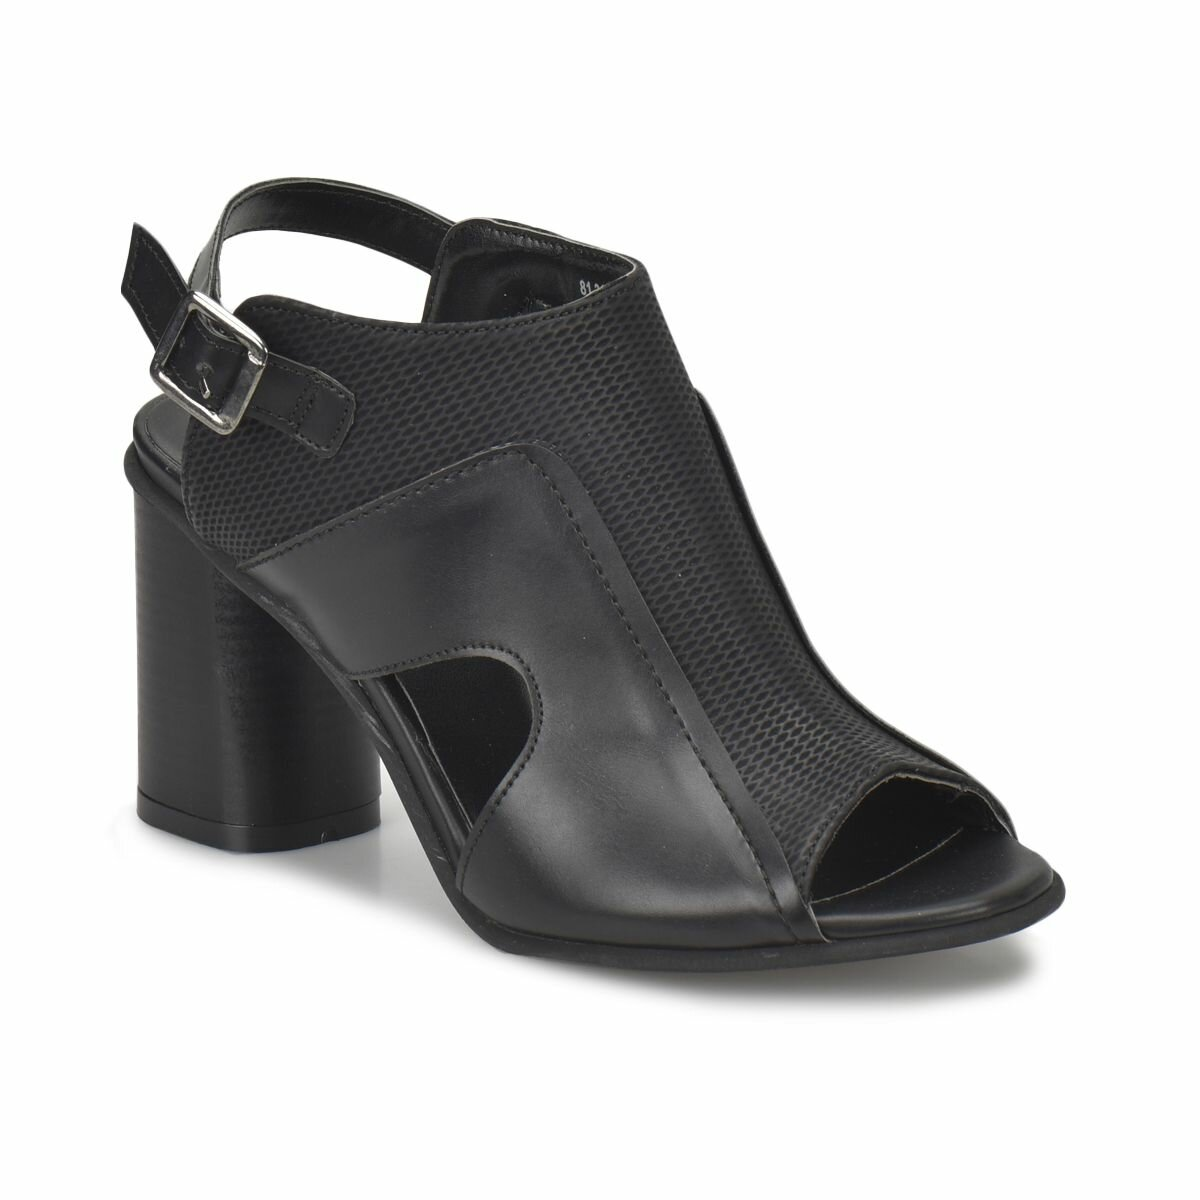 FLO 81.311242.Z Black Women Shoes Polaris